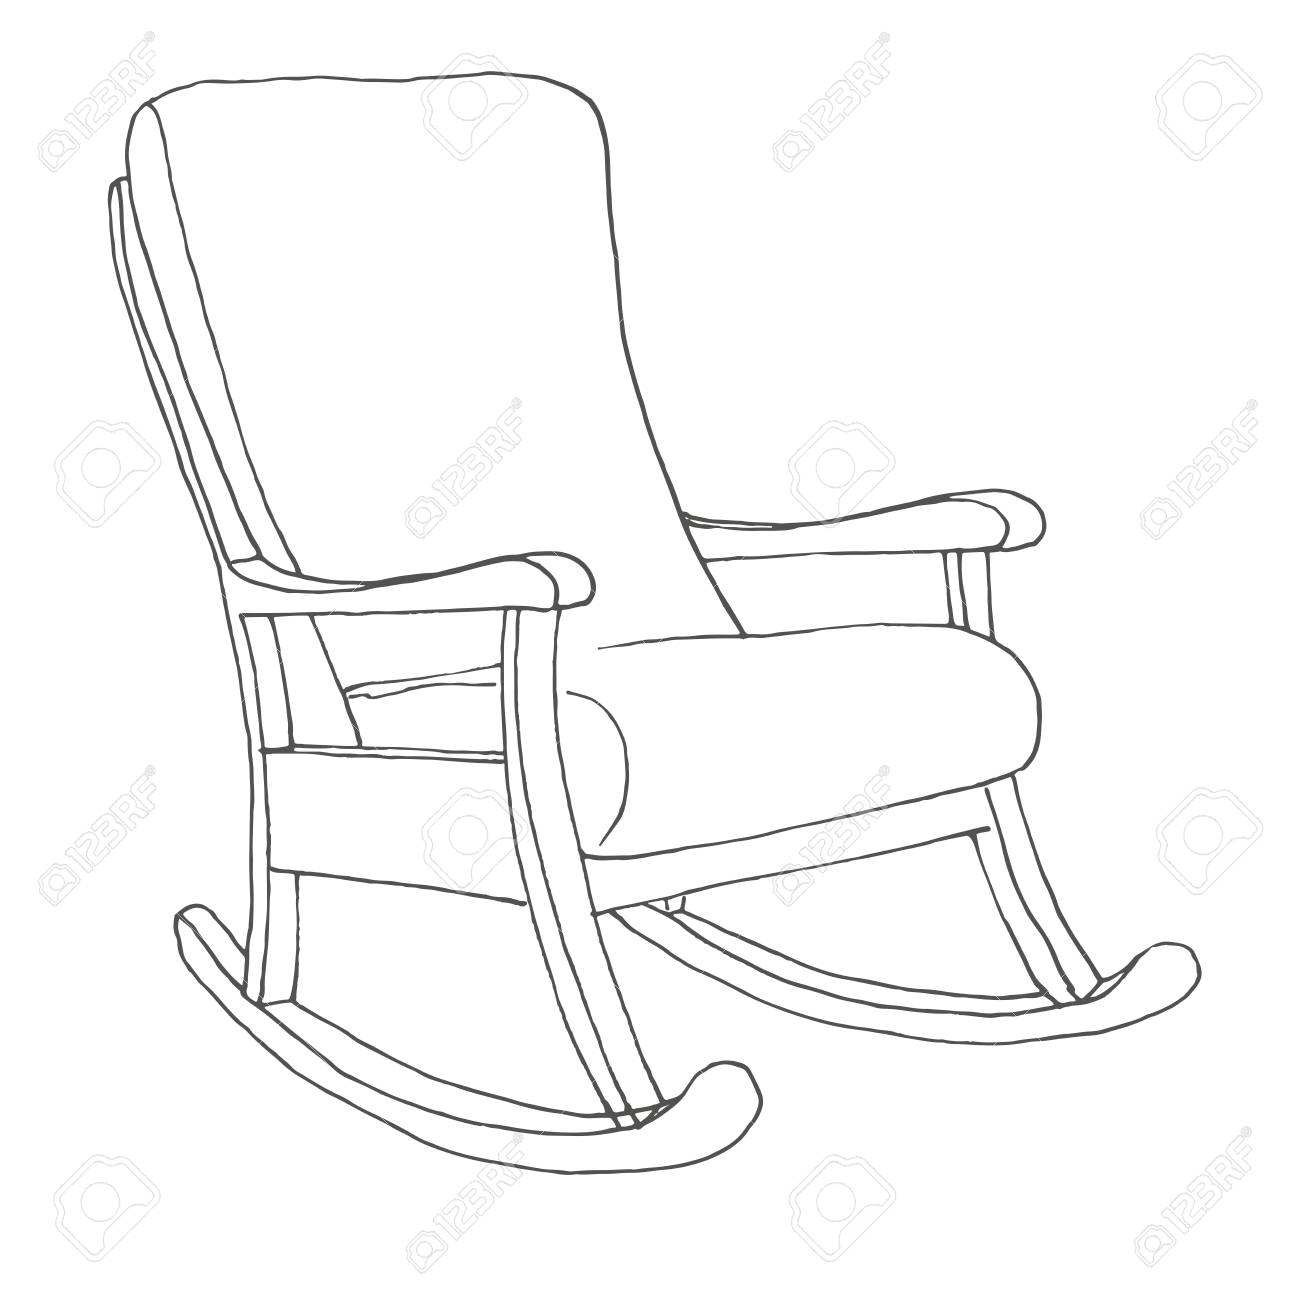 Phenomenal Rocking Chair Isolated On White Background Sketch A Comfortable Inzonedesignstudio Interior Chair Design Inzonedesignstudiocom